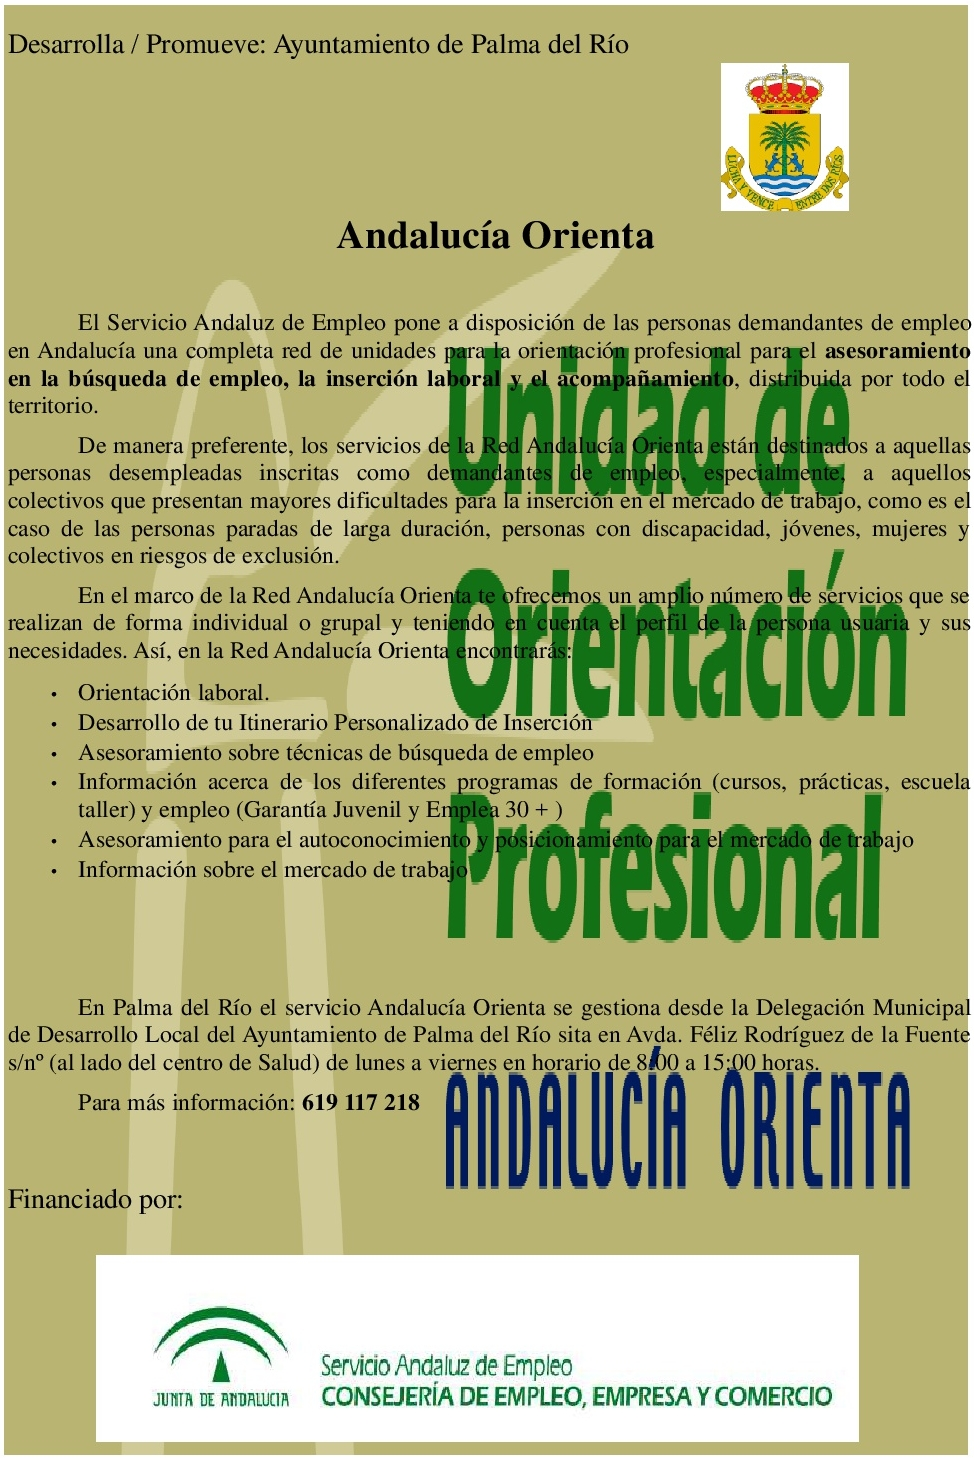 https://www.palmadelrio.es/sites/default/files/publicidad_rrss_orienta-001.jpg